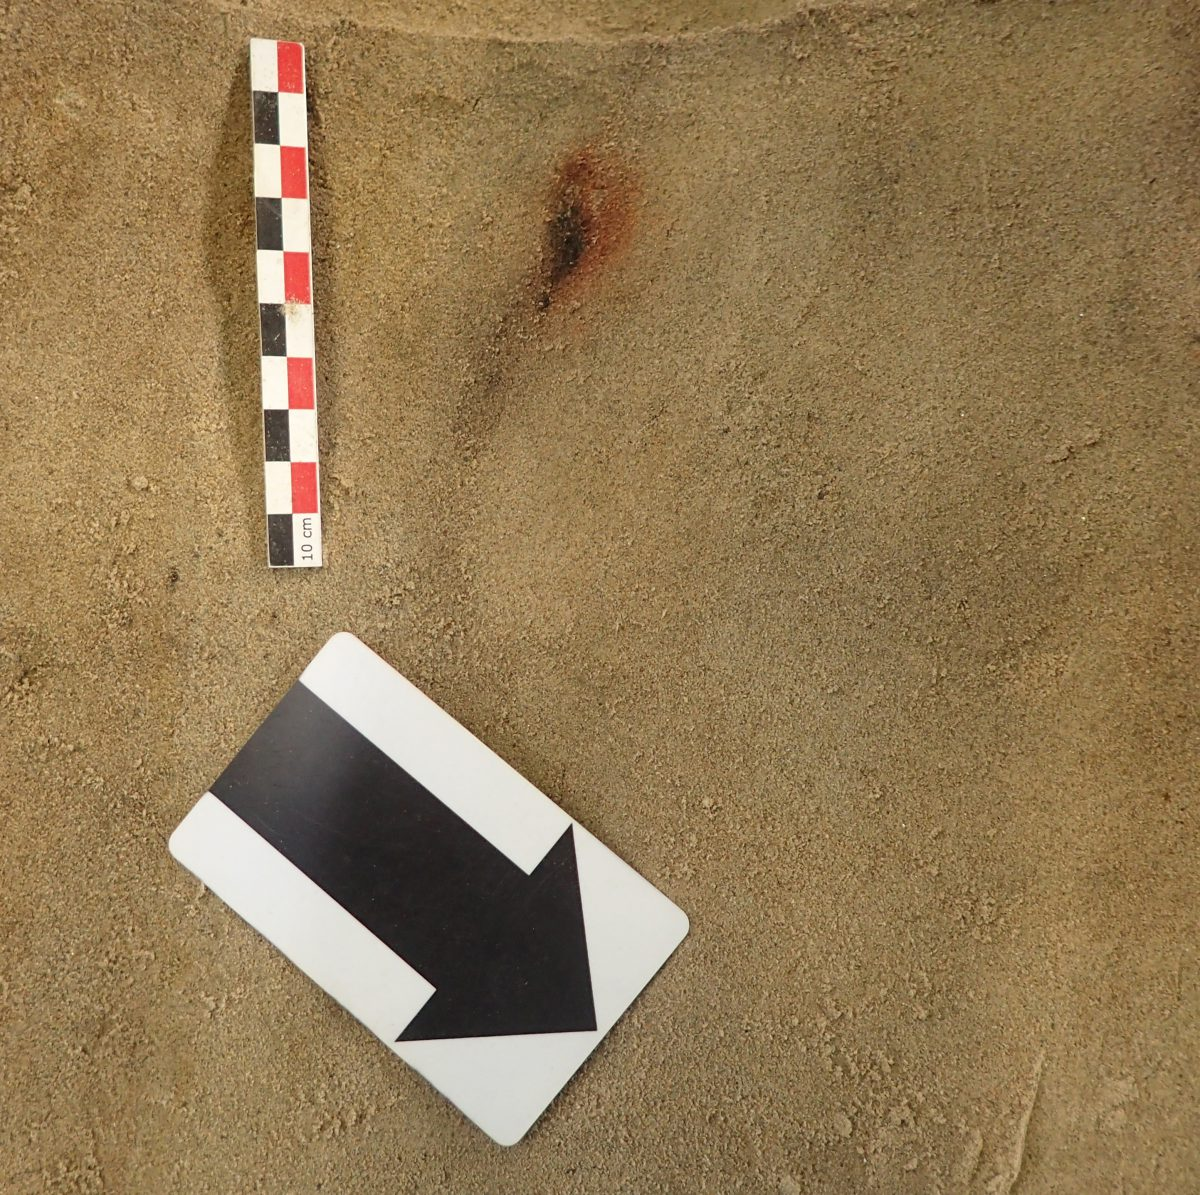 Article | Ocher in Late Paleolithic Contexts at Kovrizhka IV Site, Baikal-Patom Highlands (Eastern Siberia, Russia)